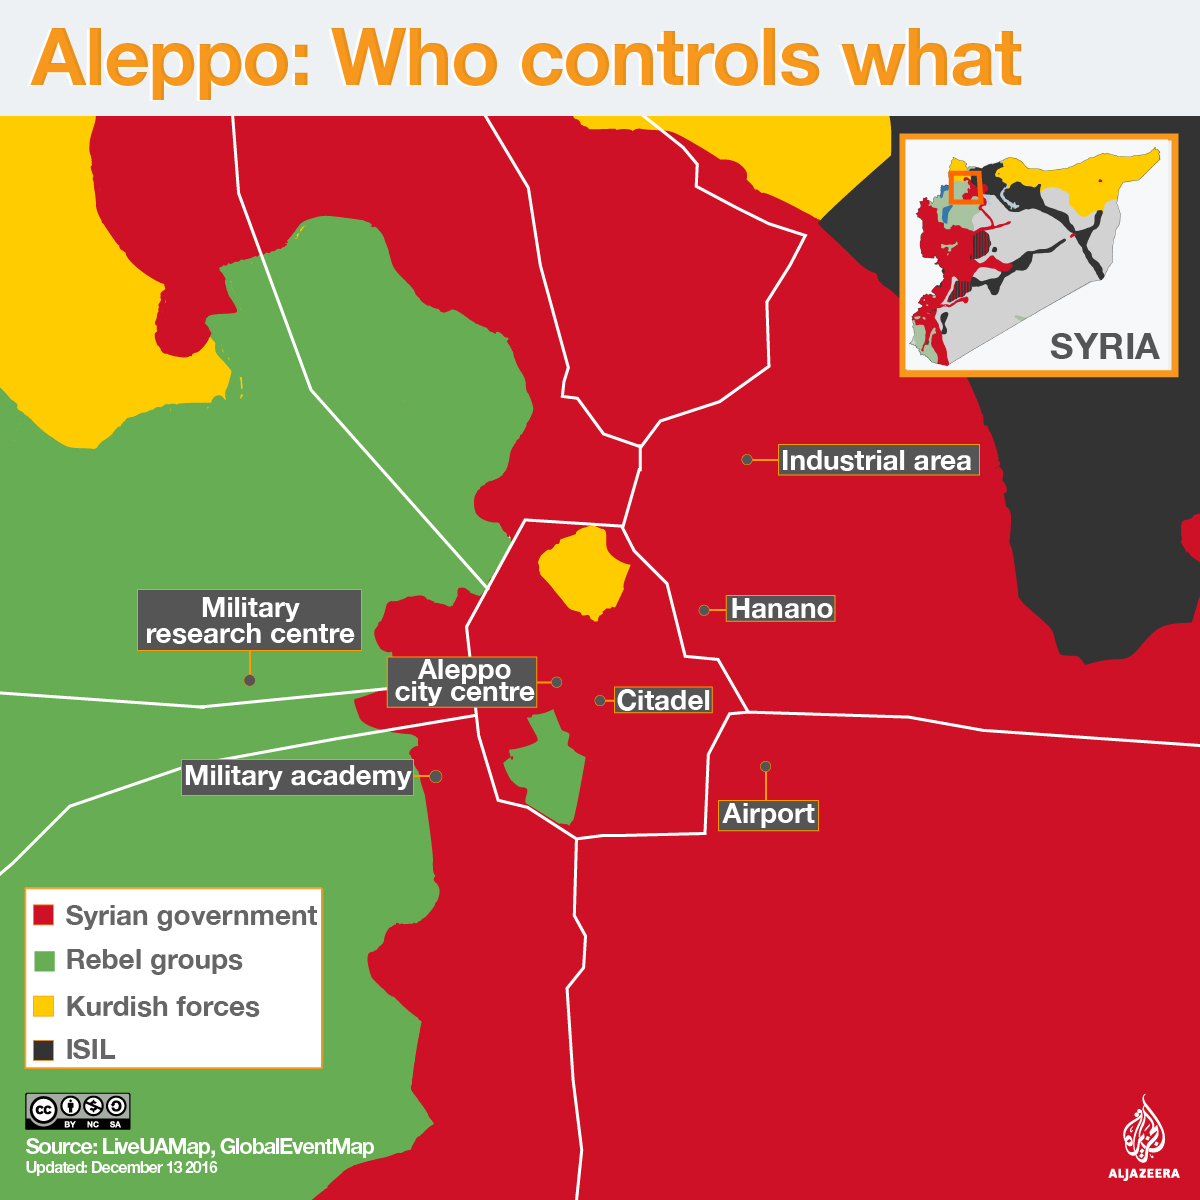 aleppo map syria rebels kurds